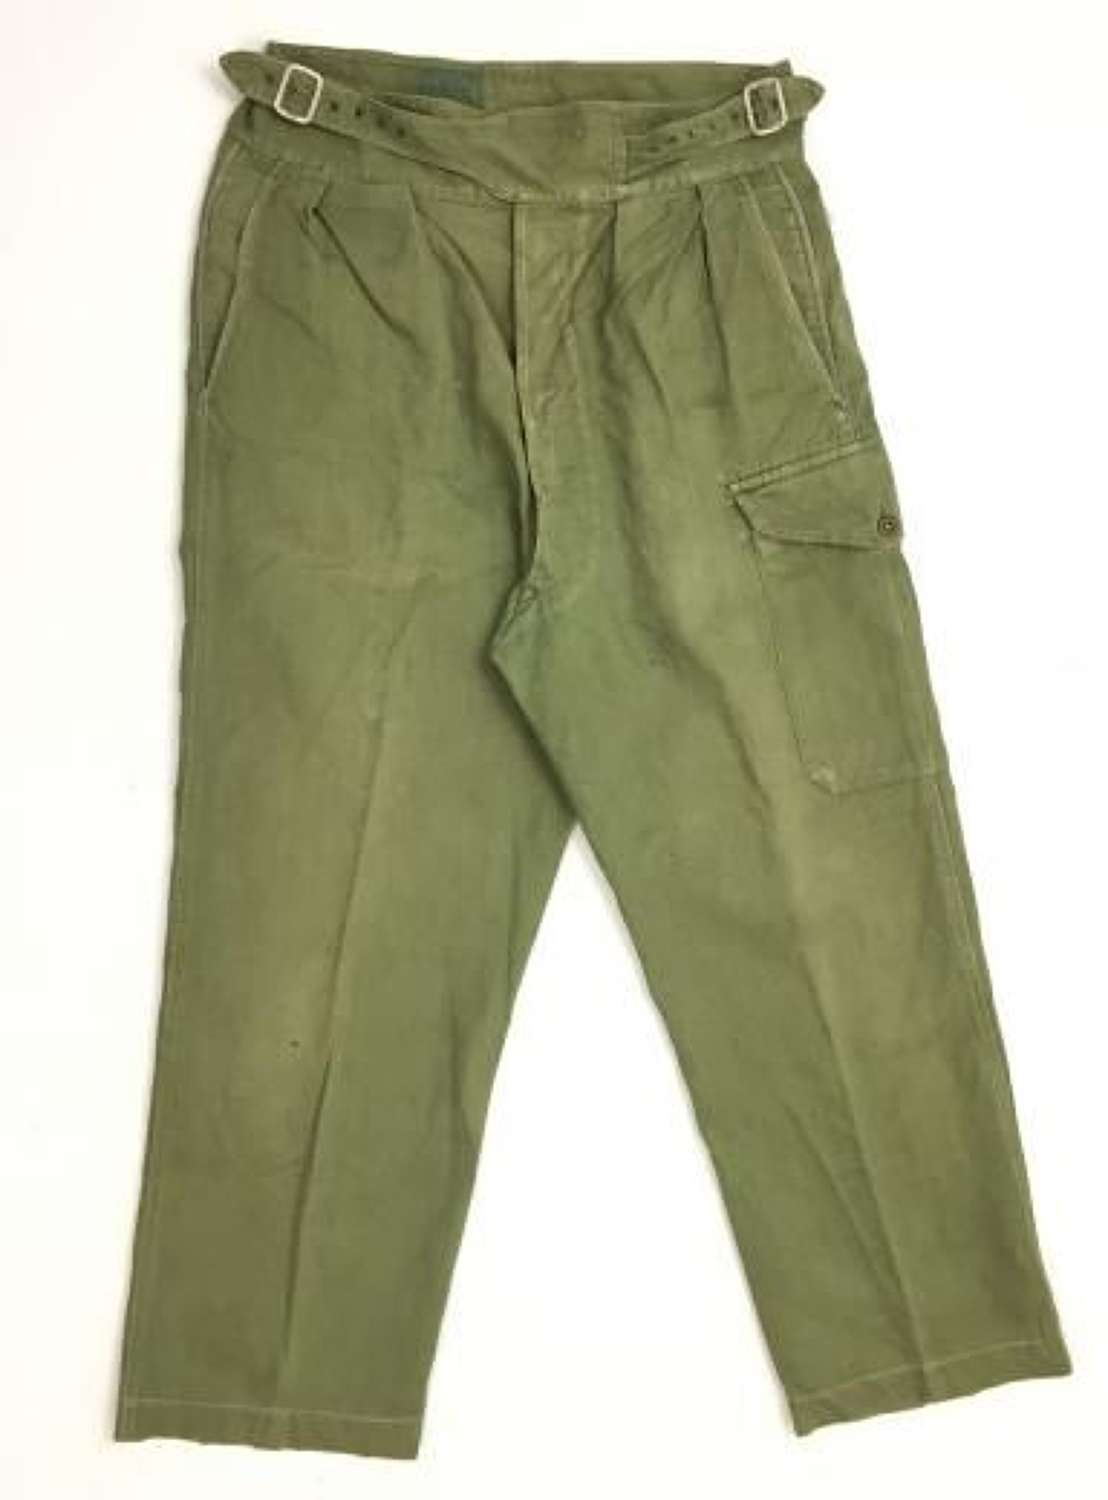 Original 1955 Dated 'Trousers, Drill Green' 1950 Pattern